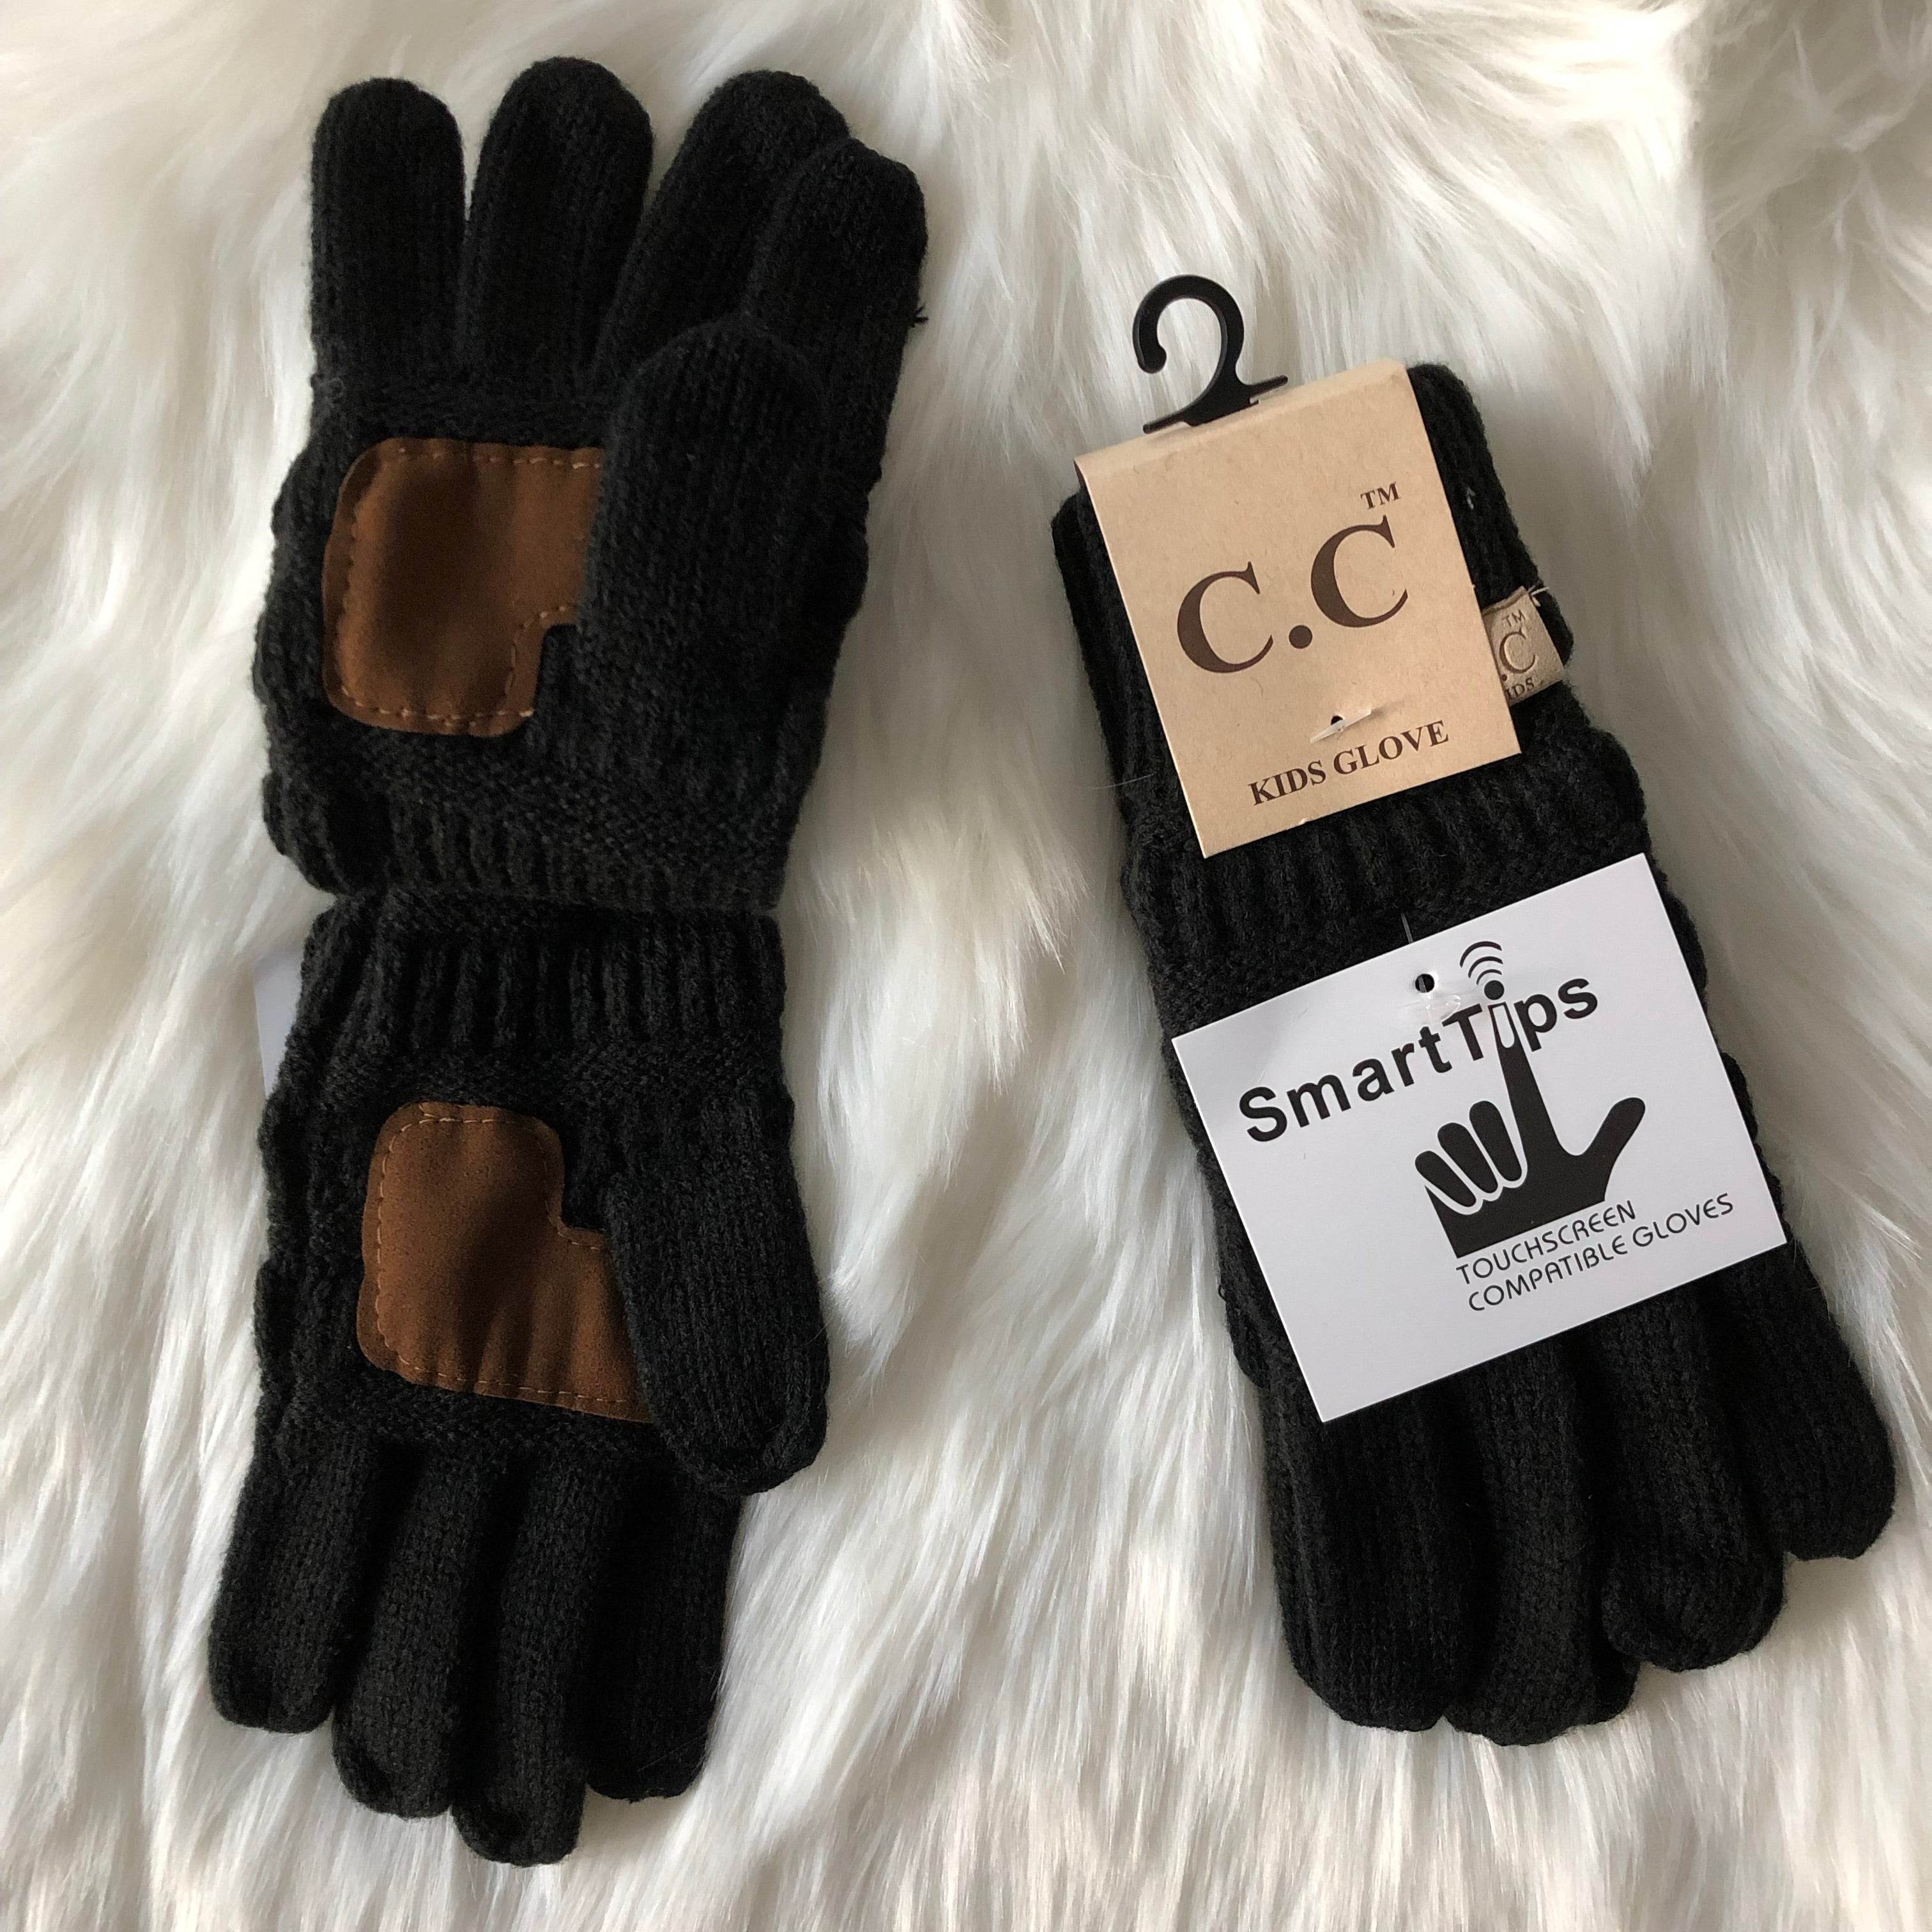 CC - Kids Glove w/ Smart Tips